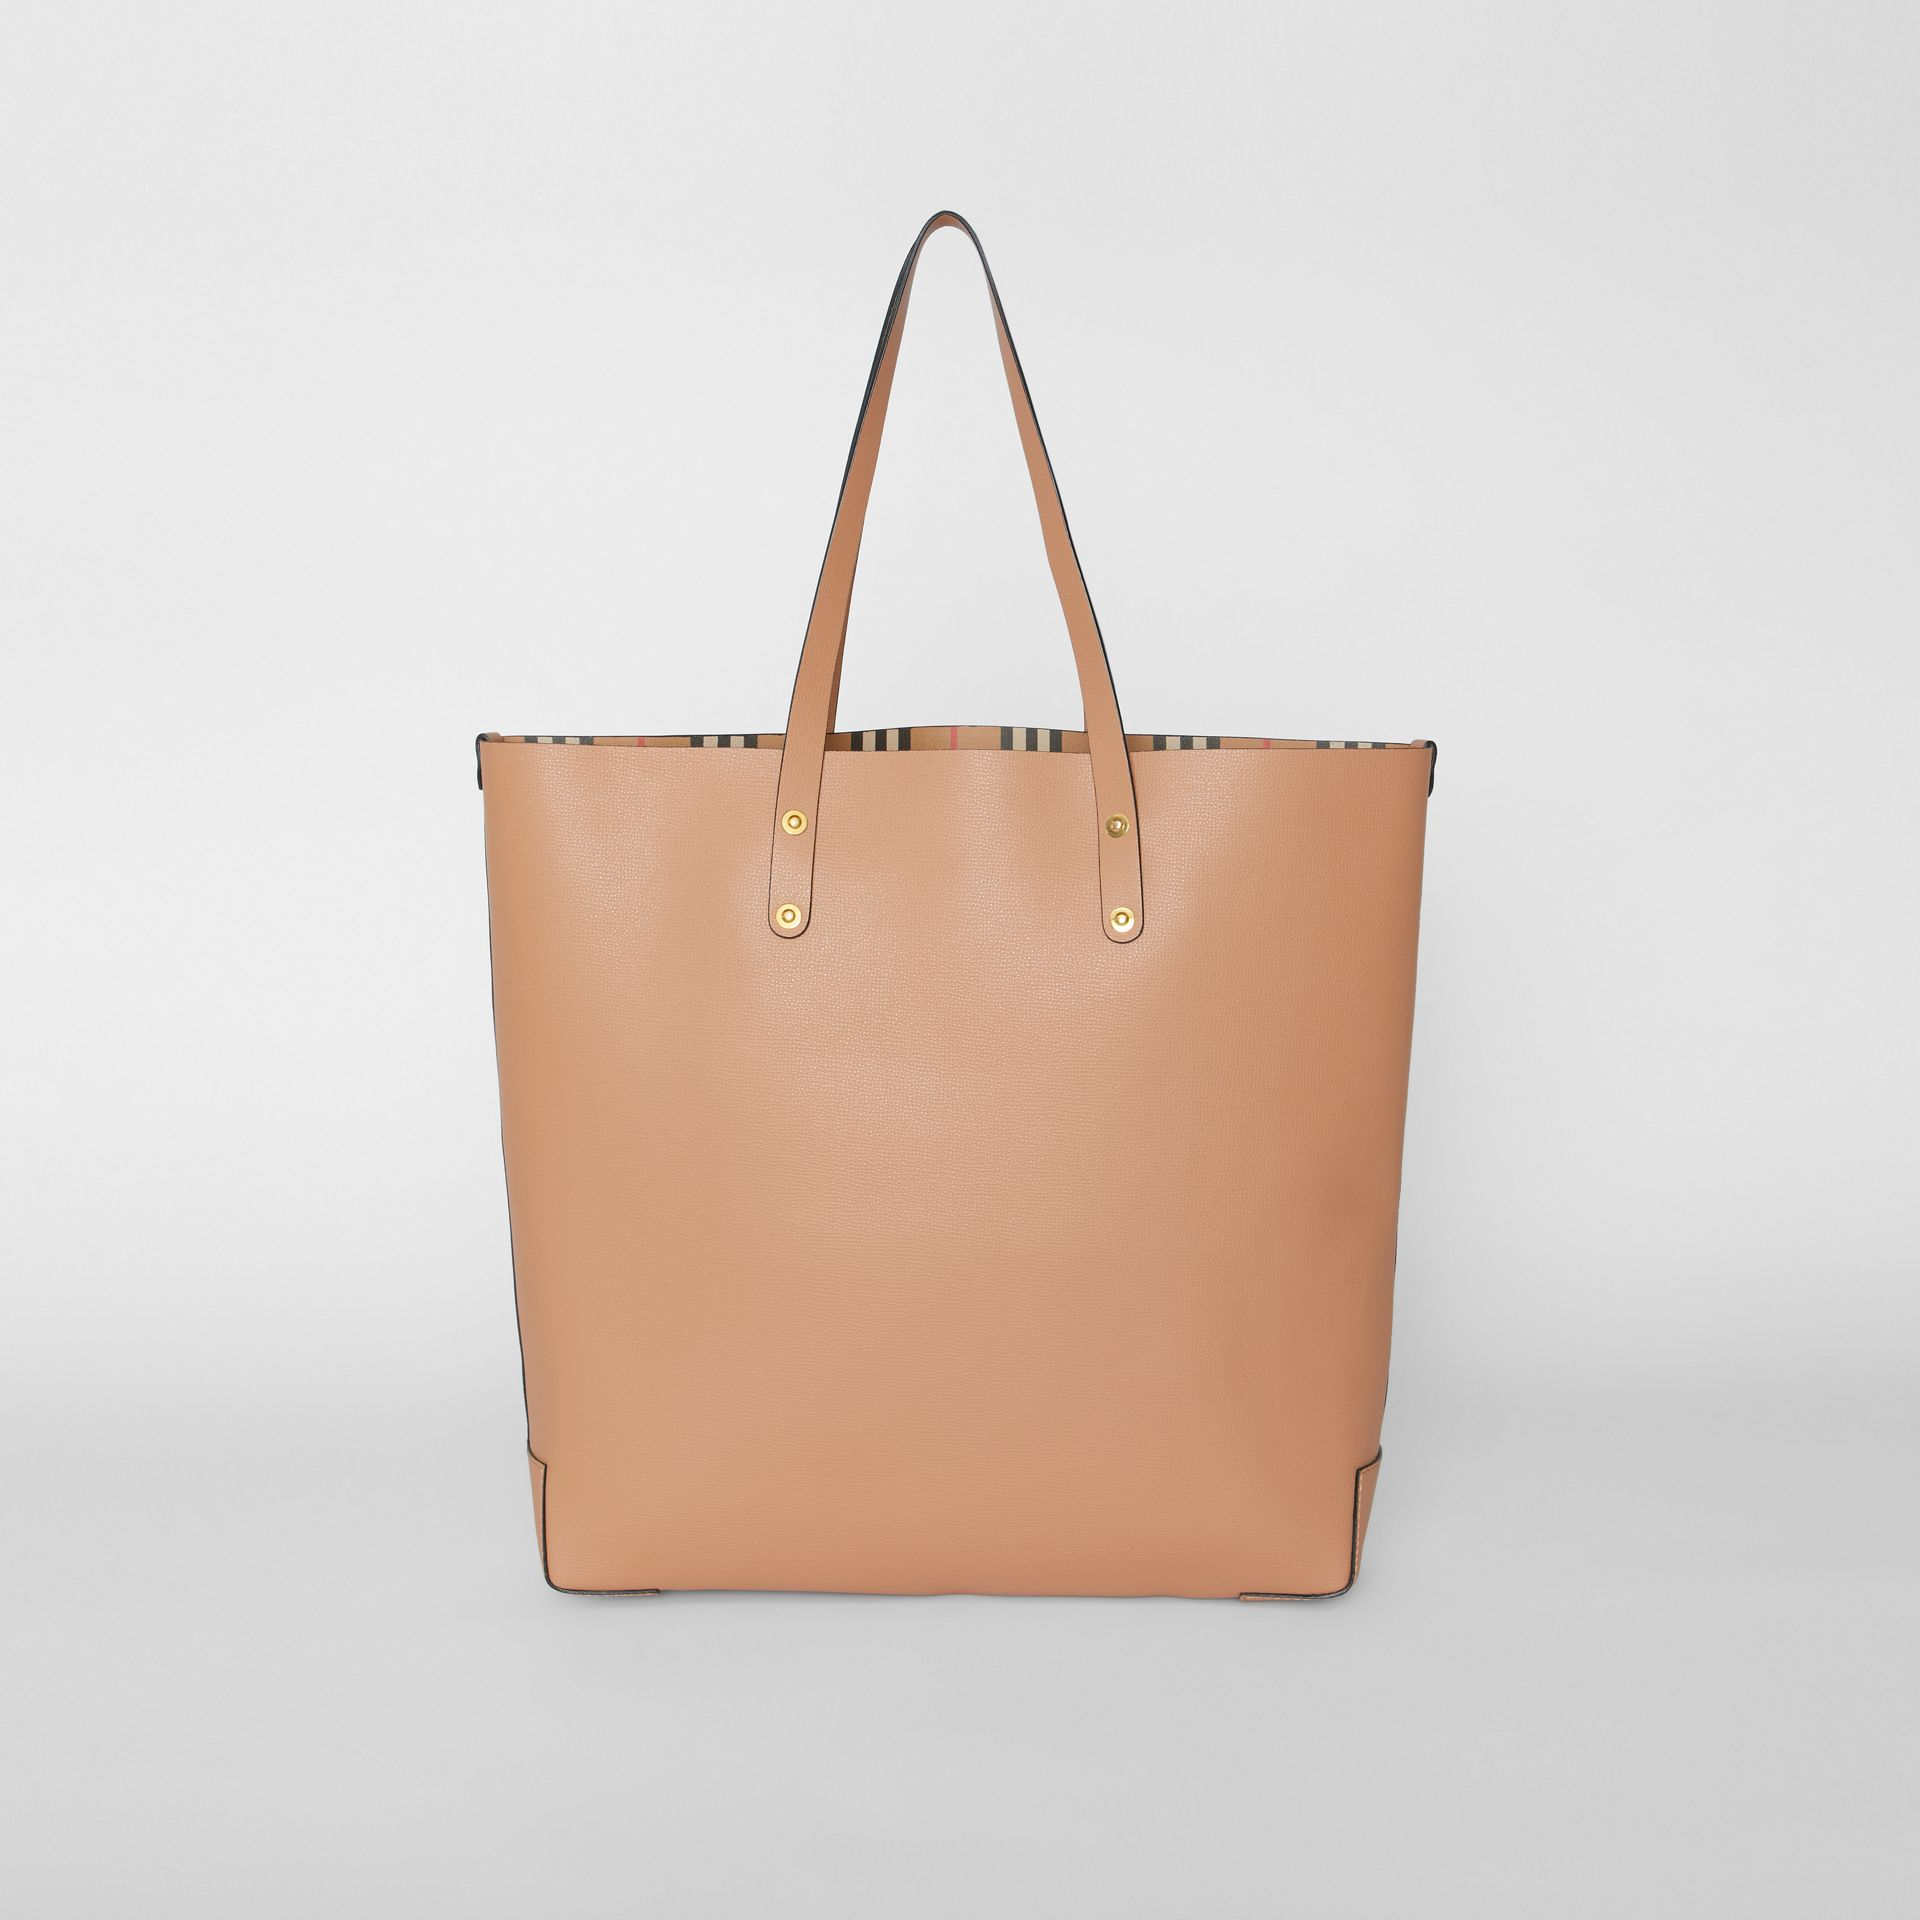 Embossed Crest Leather Tote in Light Camel - Women | Burberry - gallery image 7